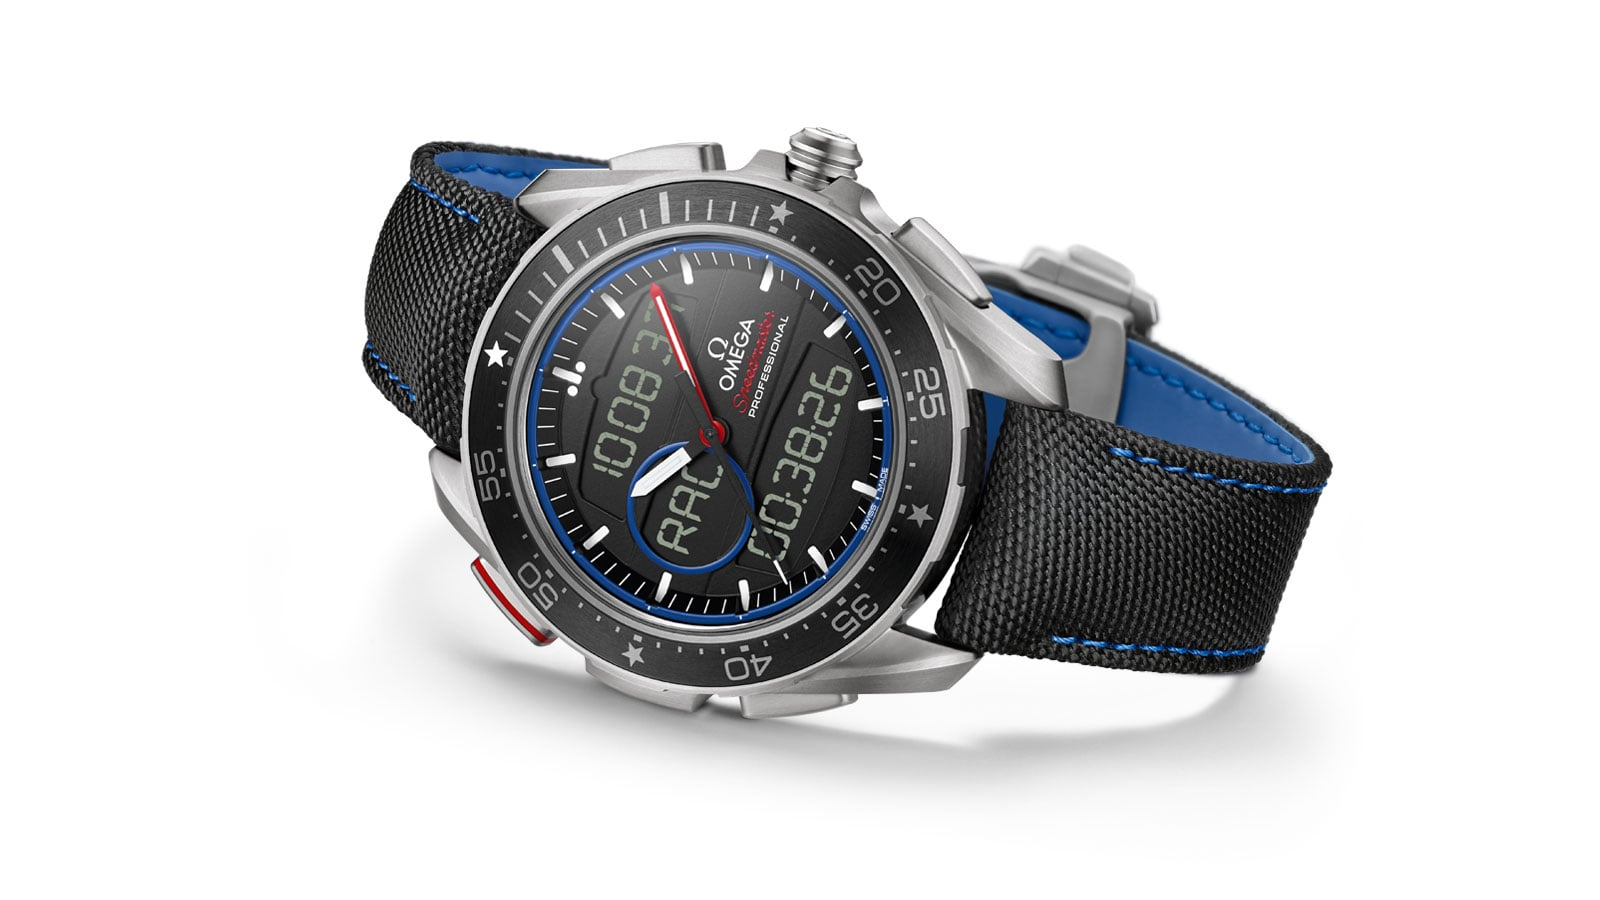 SPEEDMASTER X-33 REGATTA ETNZ LIMITED EDITION